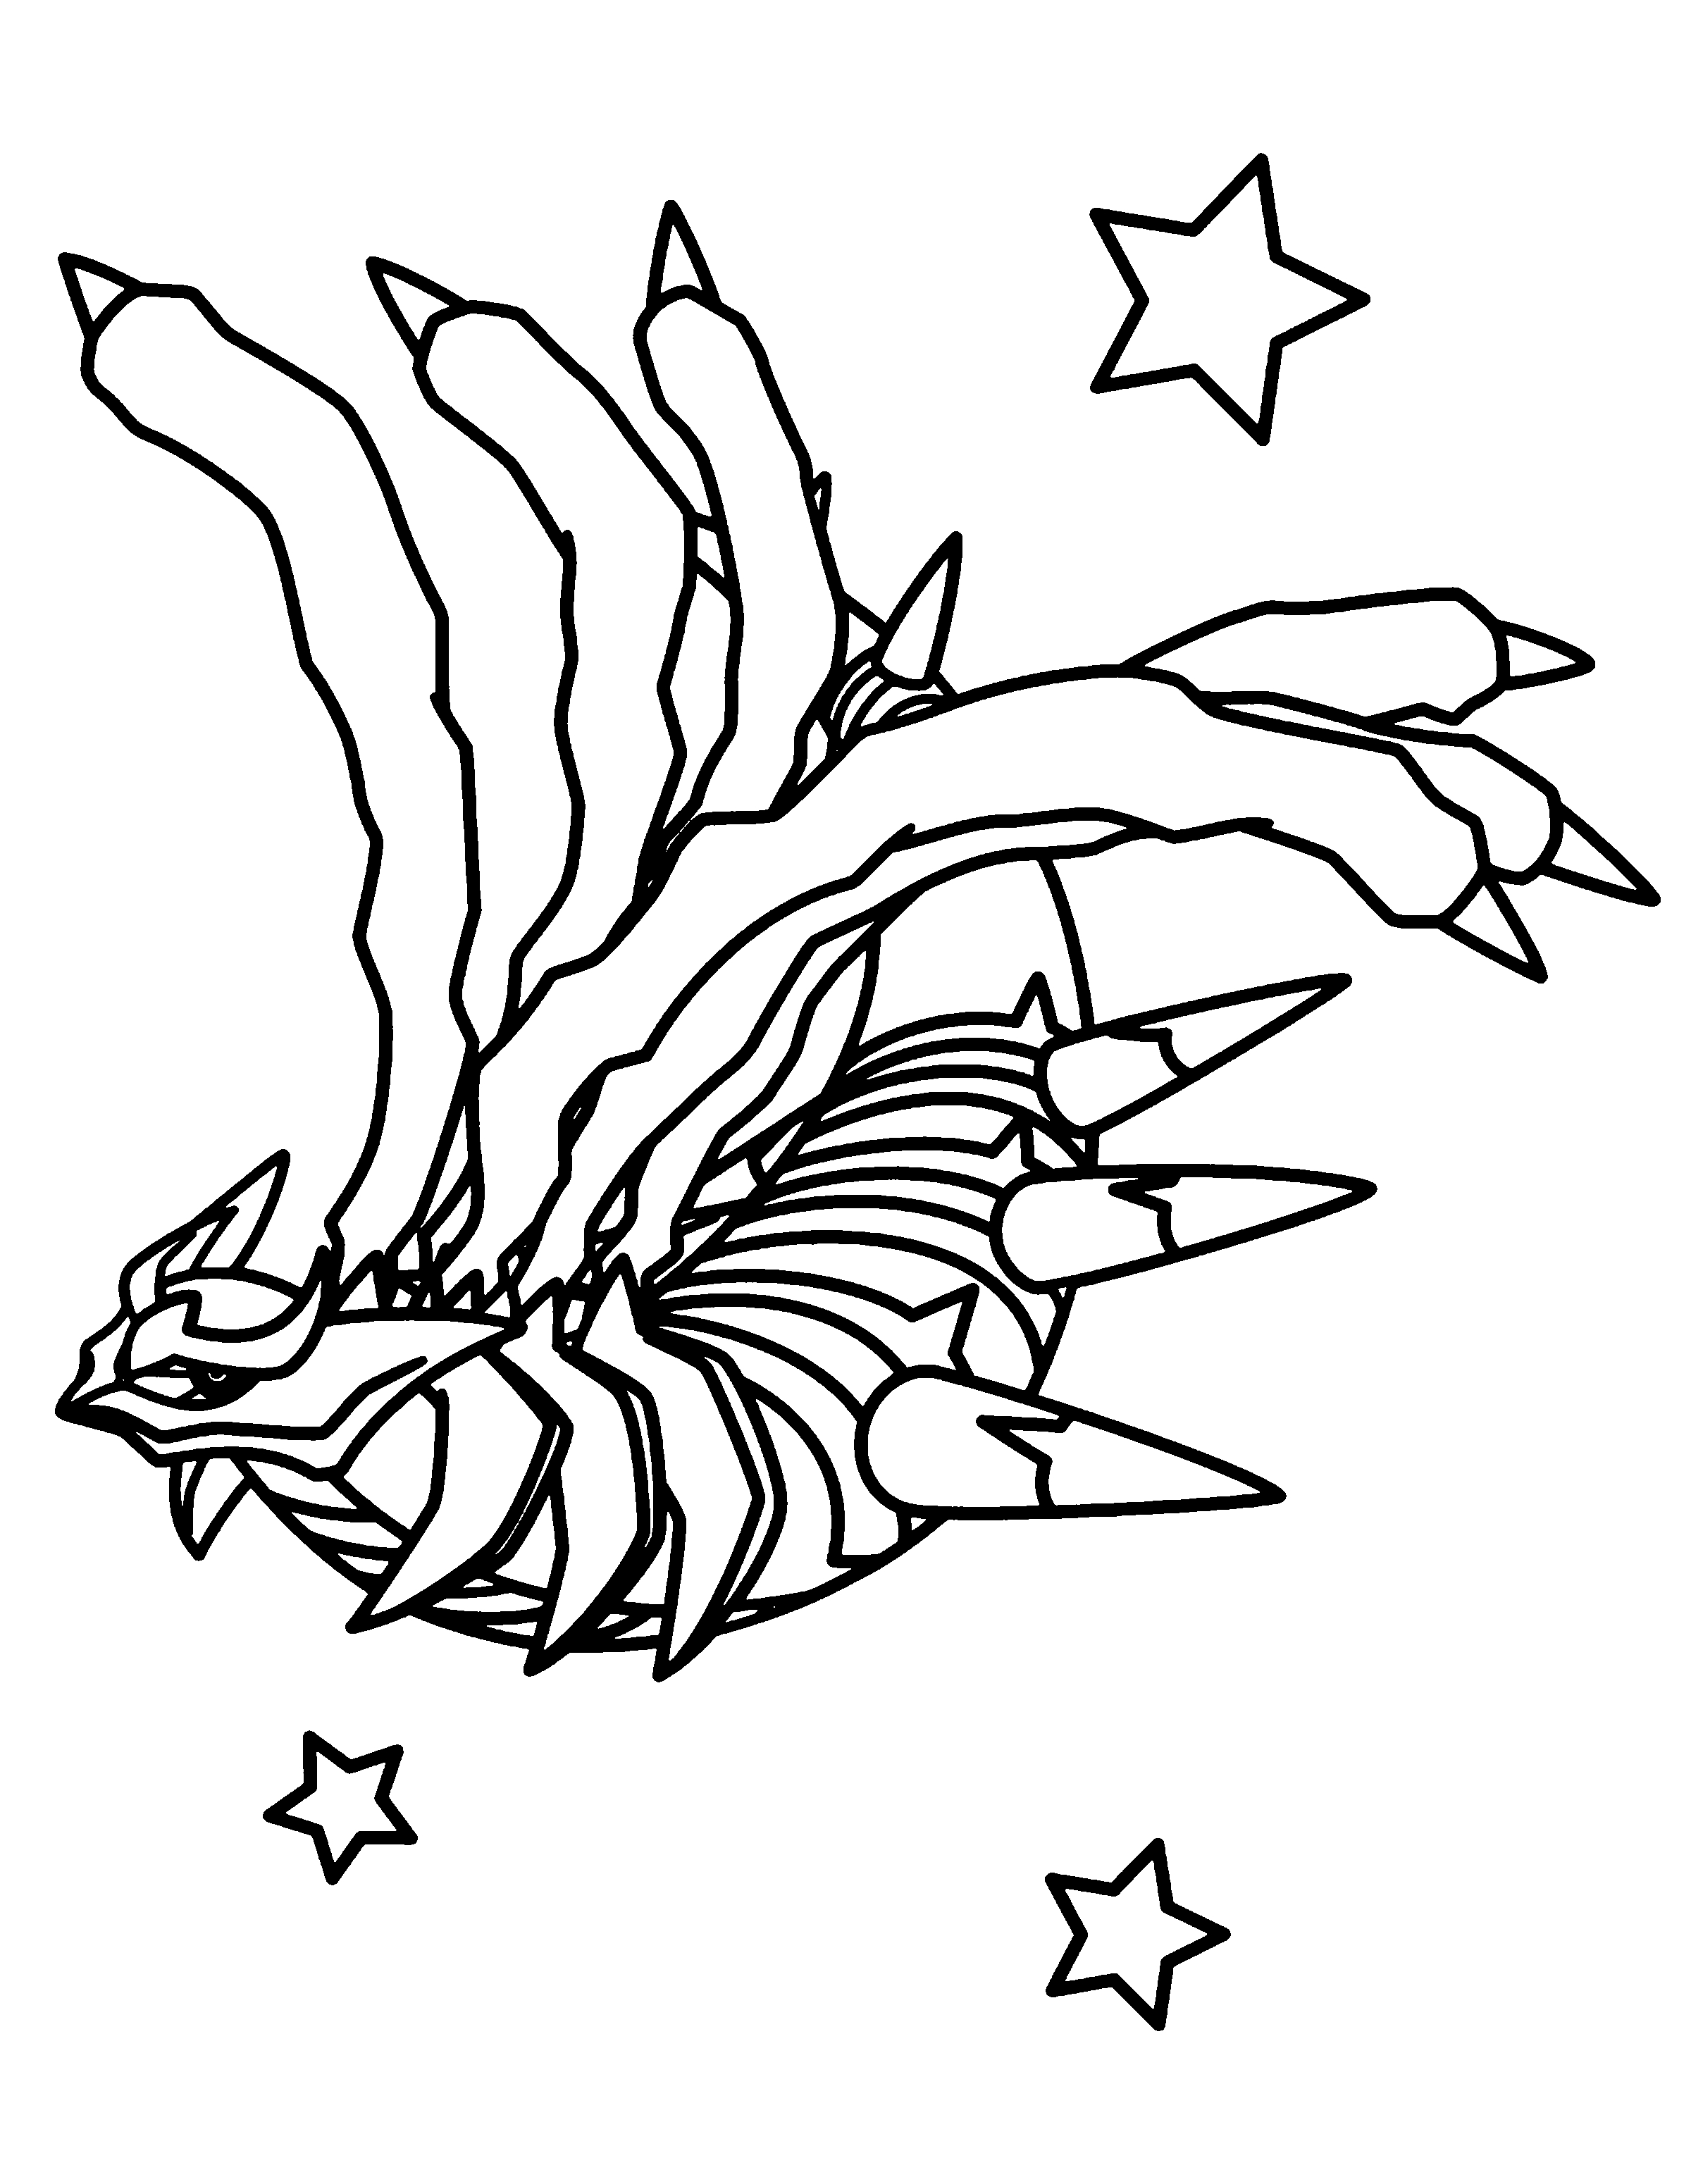 palkia coloring pages top 93 free printable pokemon coloring pages online palkia pages coloring